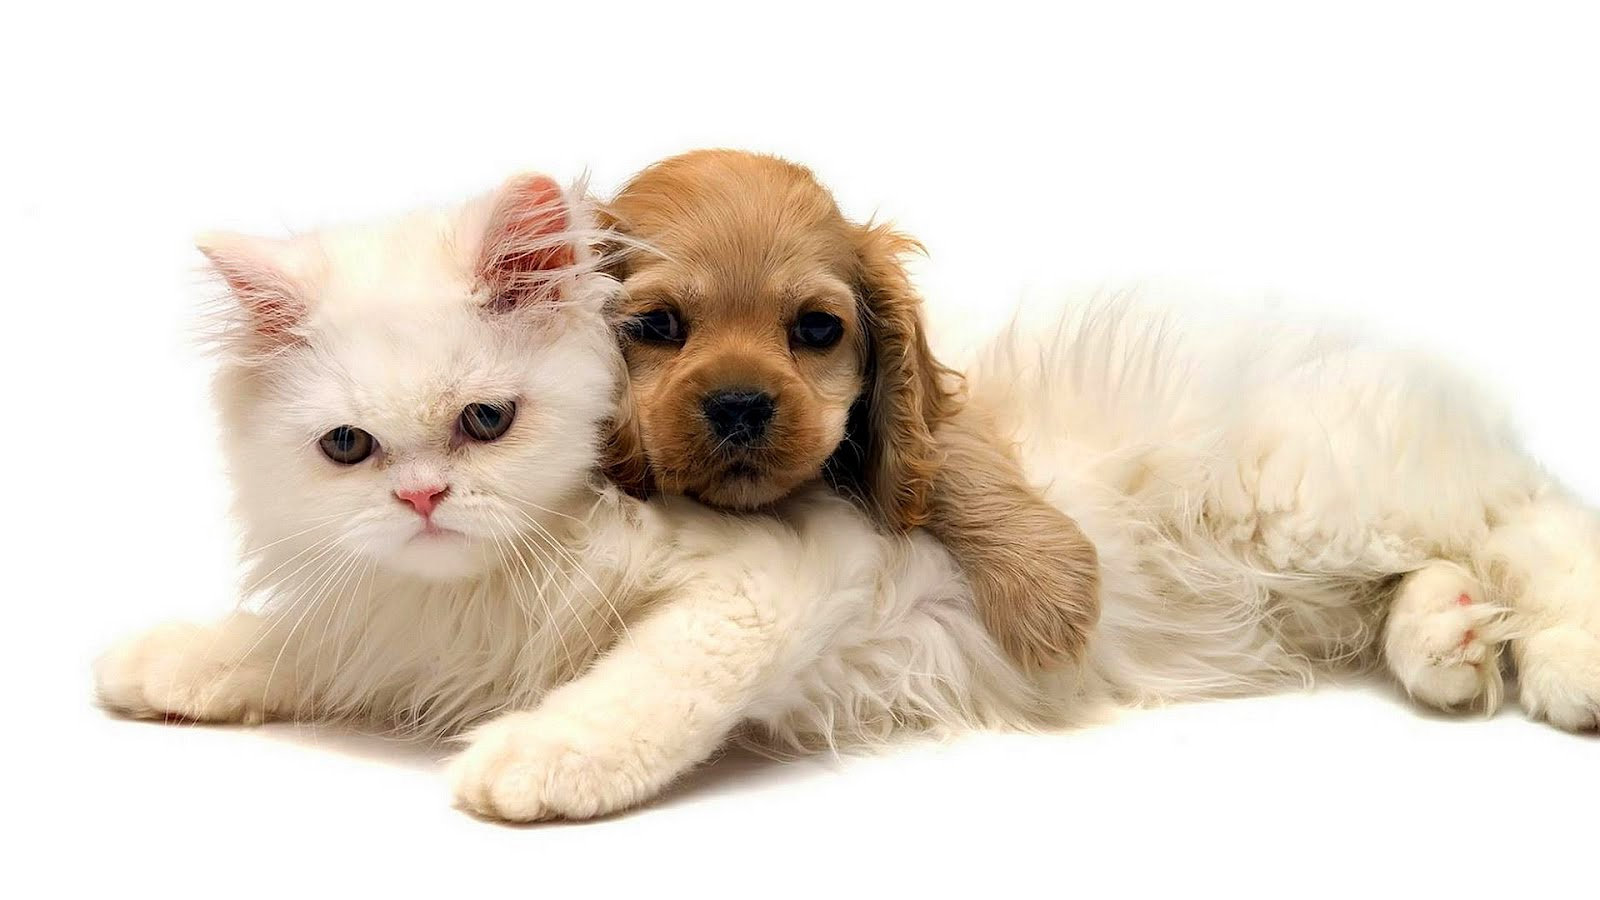 HD animal wallpaper of a cat and dog cuddling Cat and dog as best 1600x900